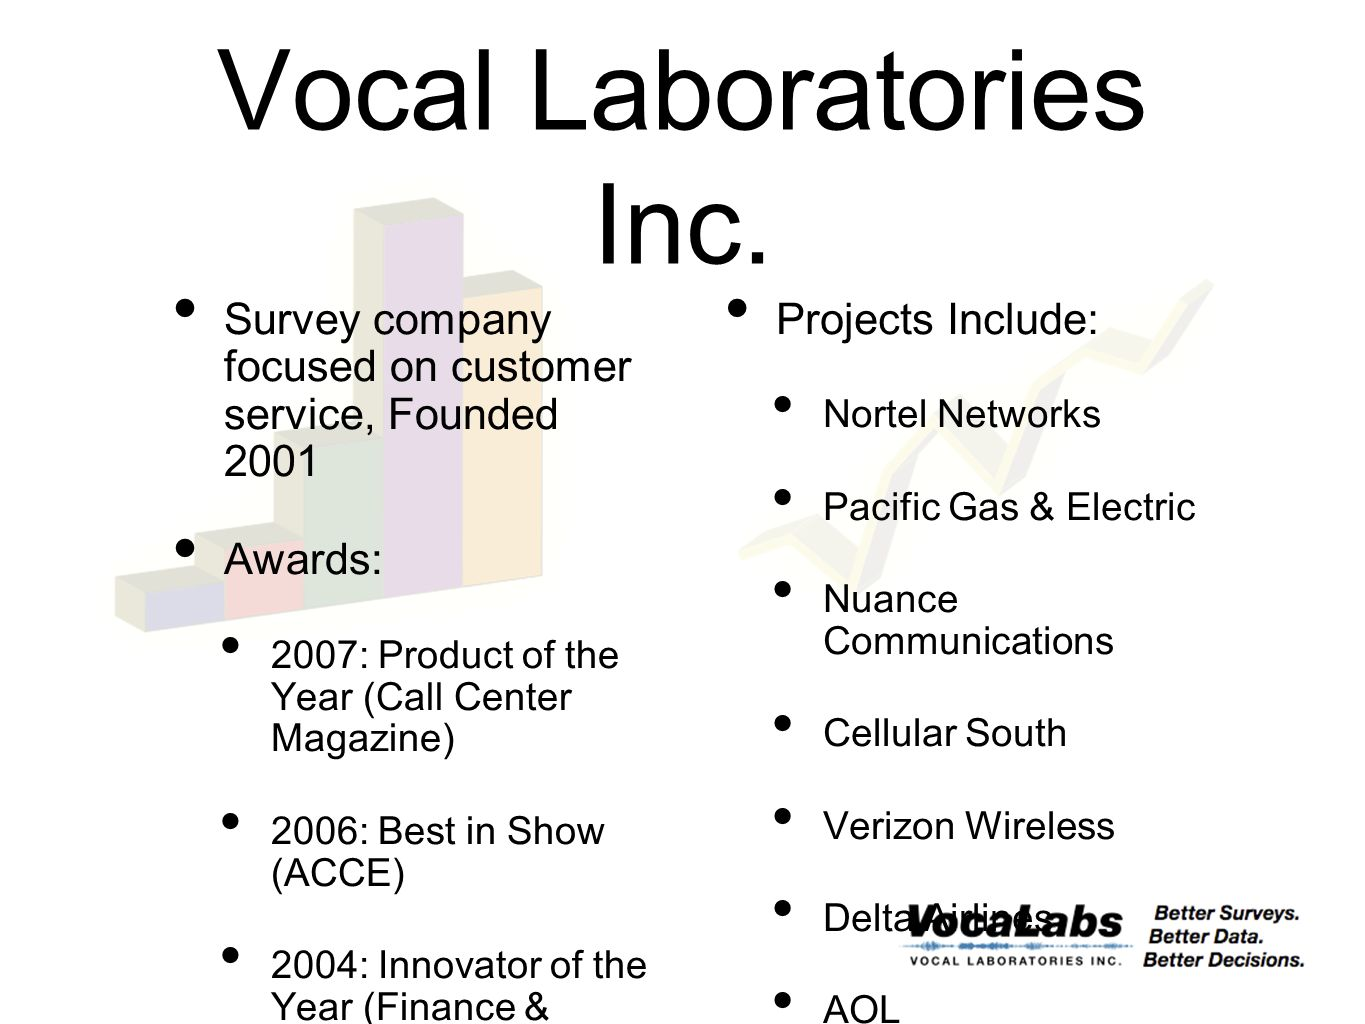 Survey company focused on customer service, Founded 2001 Awards: 2007: Product of the Year (Call Center Magazine) 2006: Best in Show (ACCE) 2004: Innovator of the Year (Finance & Commerce) 2003: Best in Show (AVIOS) Projects Include: Nortel Networks Pacific Gas & Electric Nuance Communications Cellular South Verizon Wireless Delta Airlines AOL TiVo Gateway TV Guide Aetna